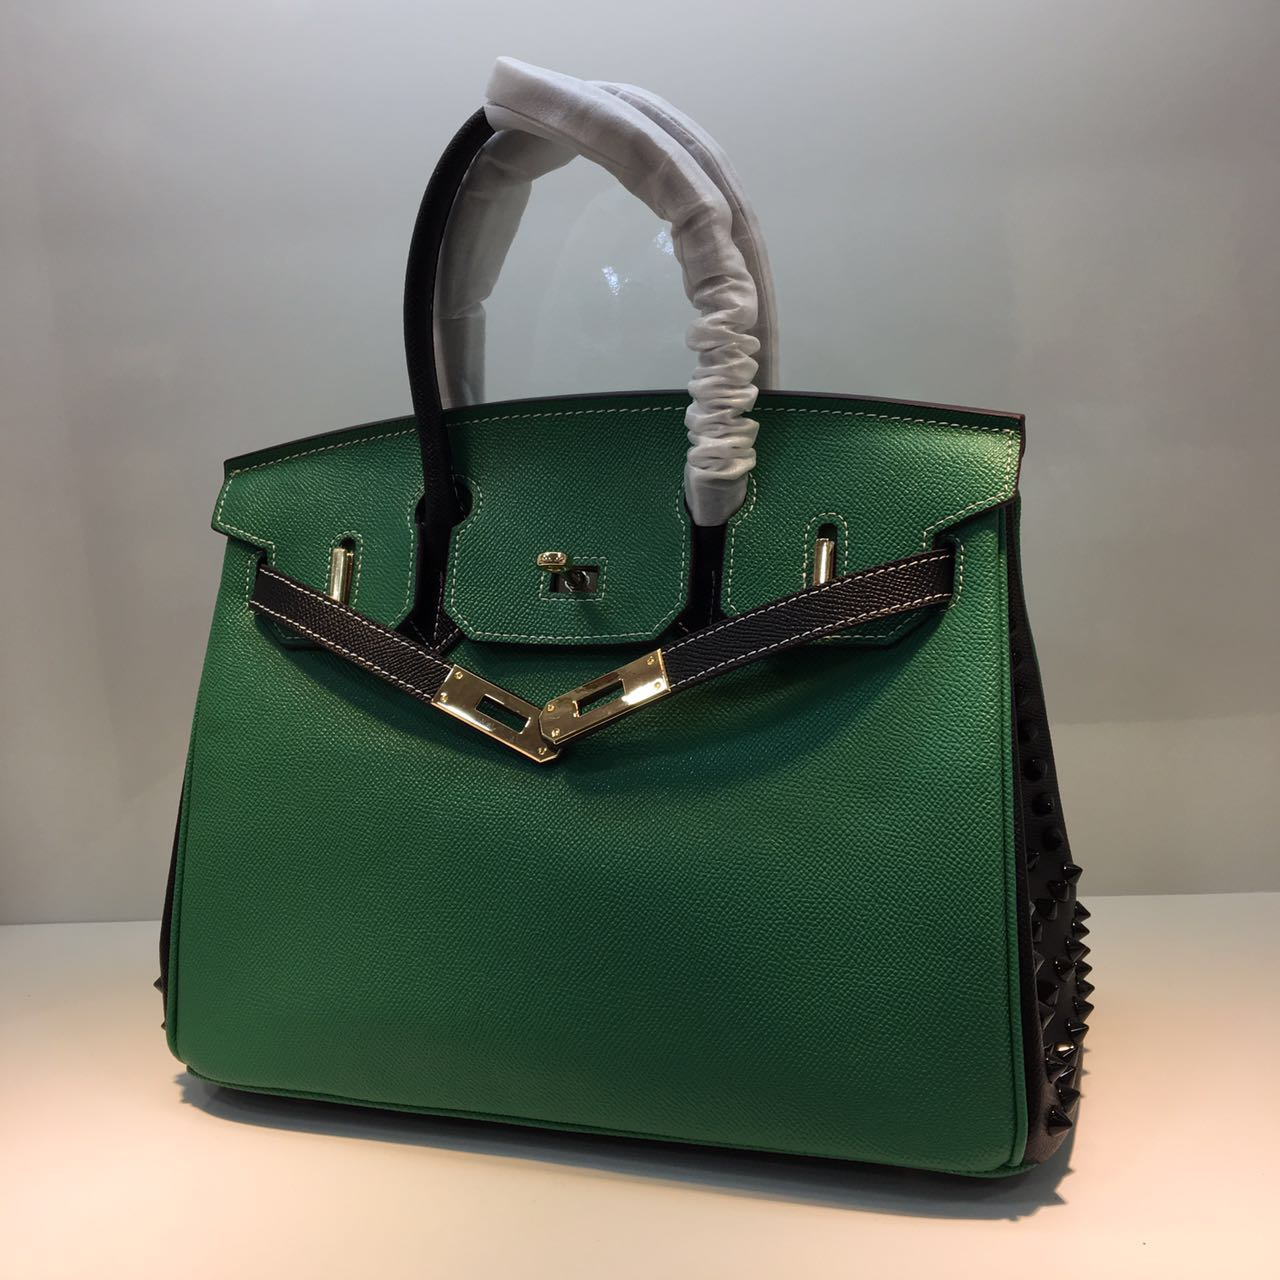 HERMES Birkin 35cm Bag Calfskin Leather 17823 Green